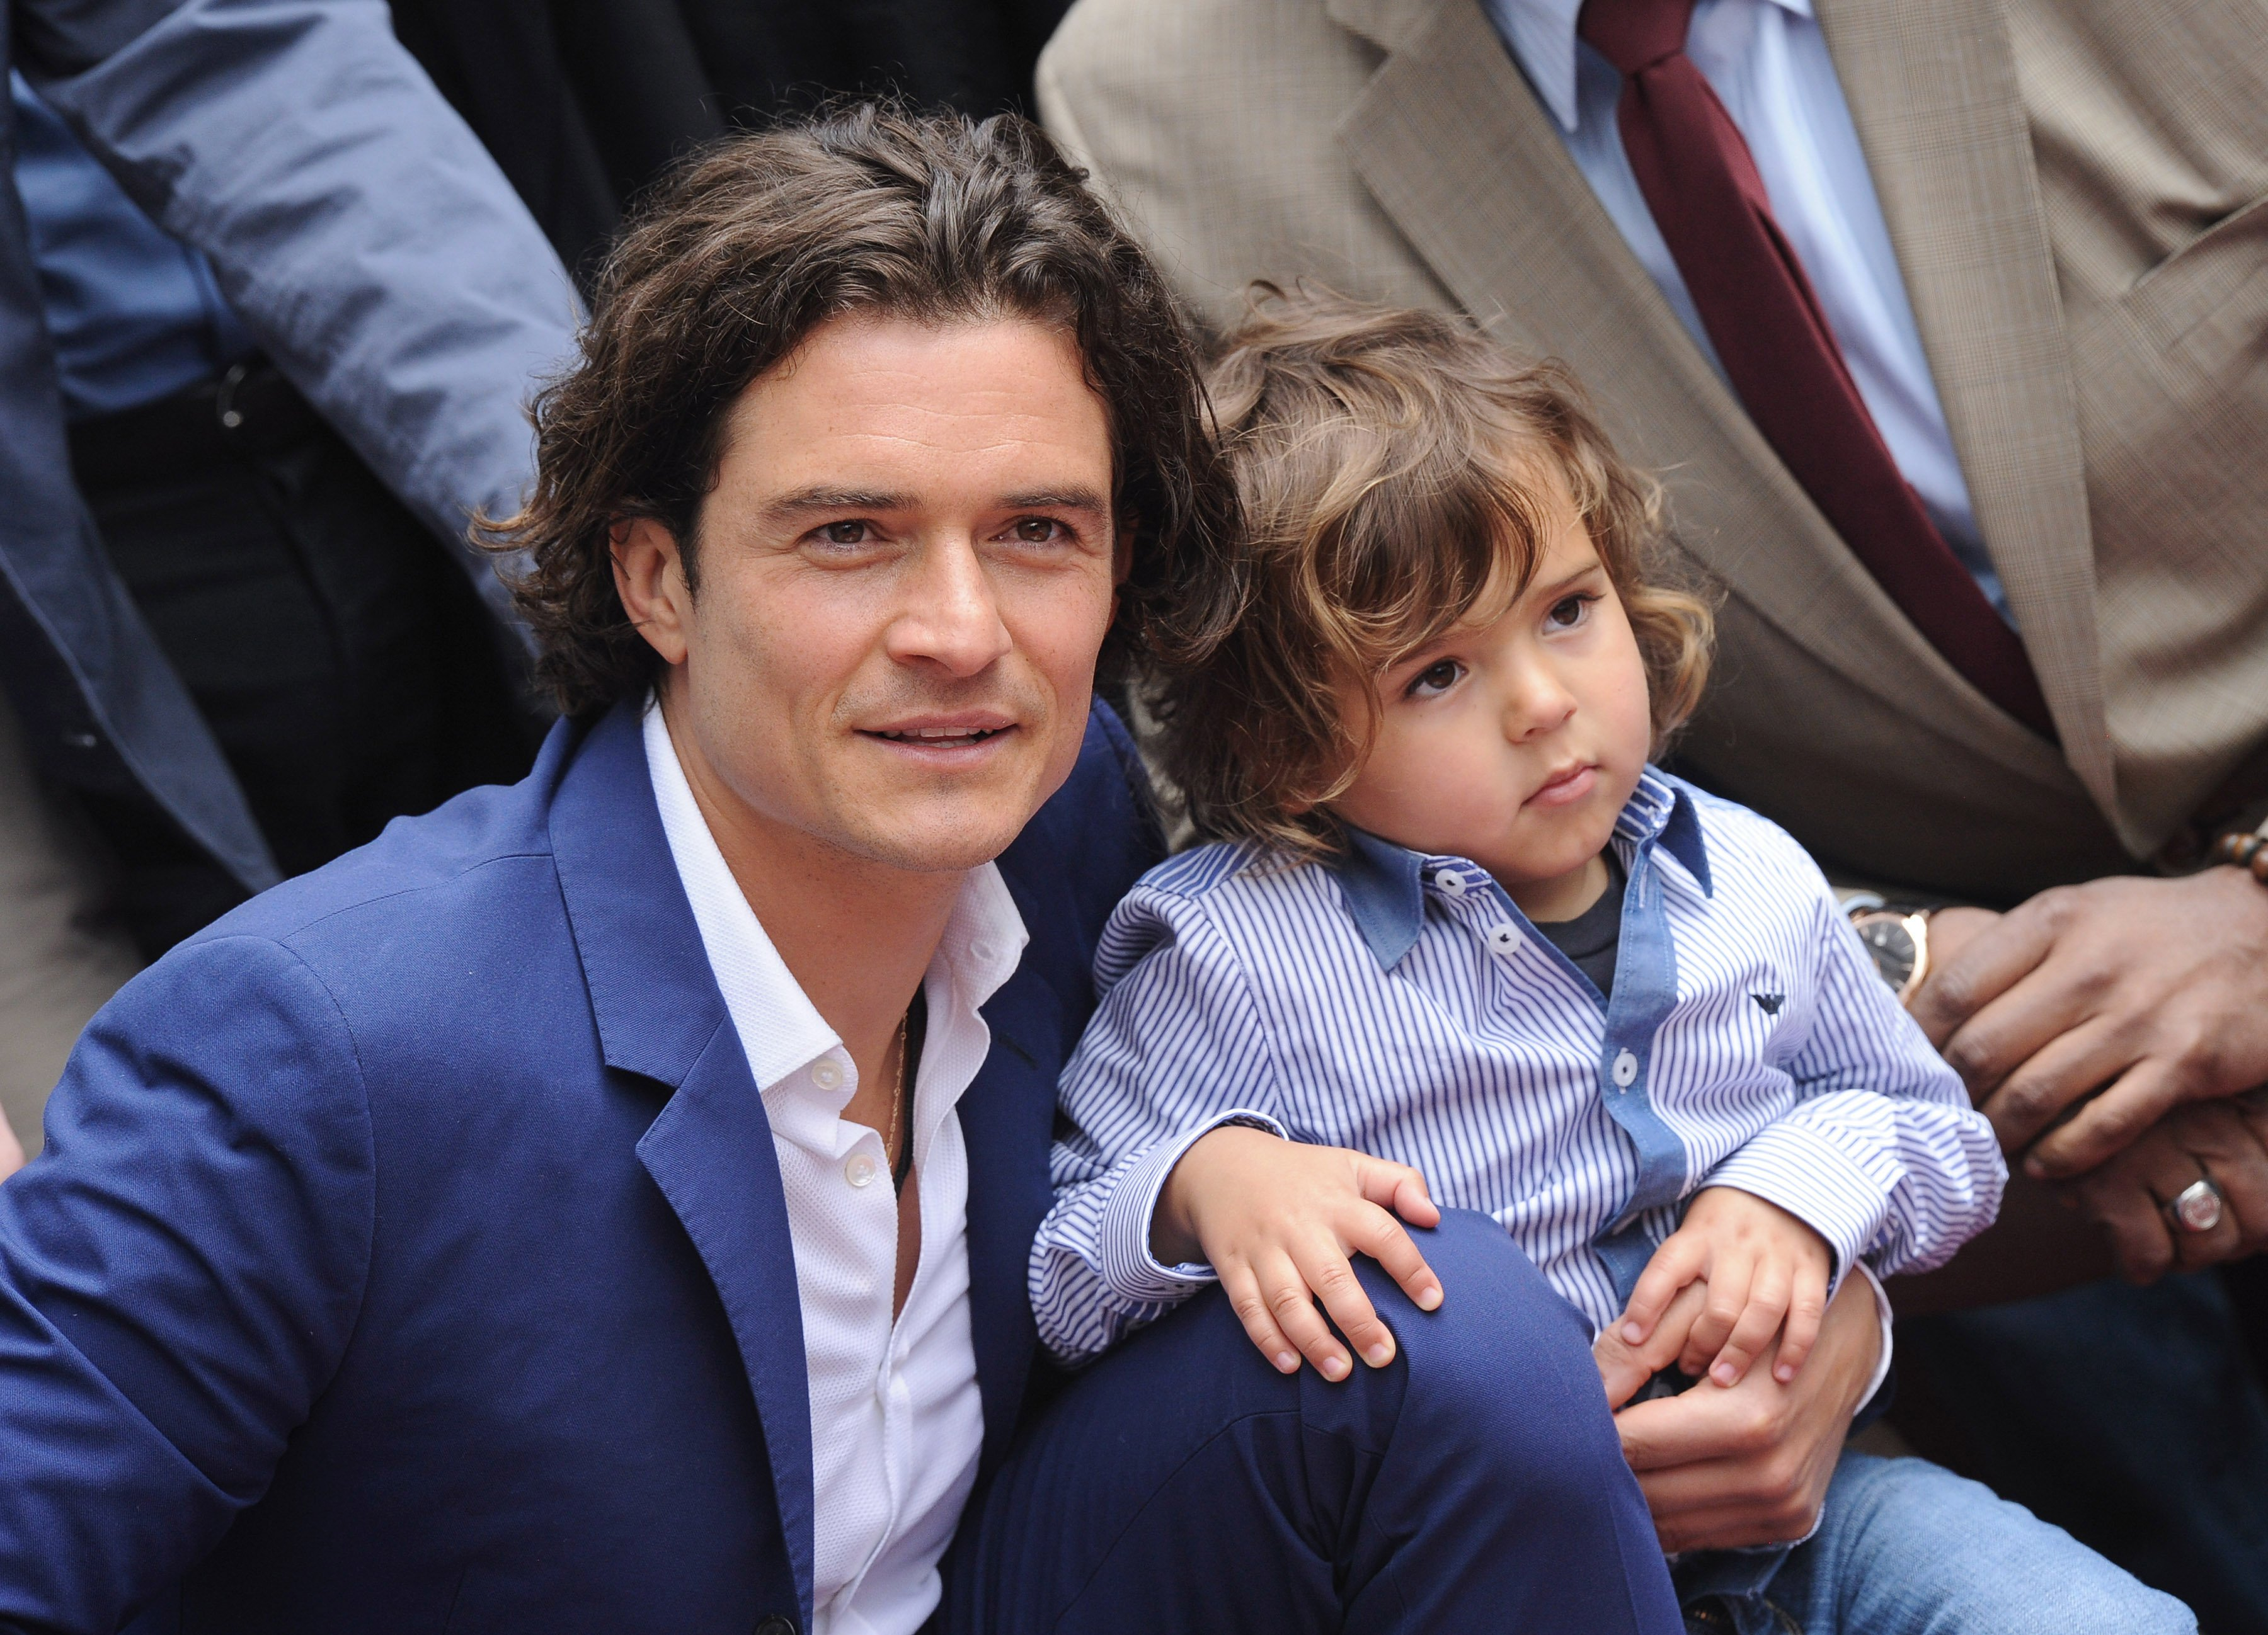 Orlando Bloom and his son Flynn attend Bloom's Hollywood Walk of Fame star honor event in California on April 2, 2014 | Photo: Getty Images